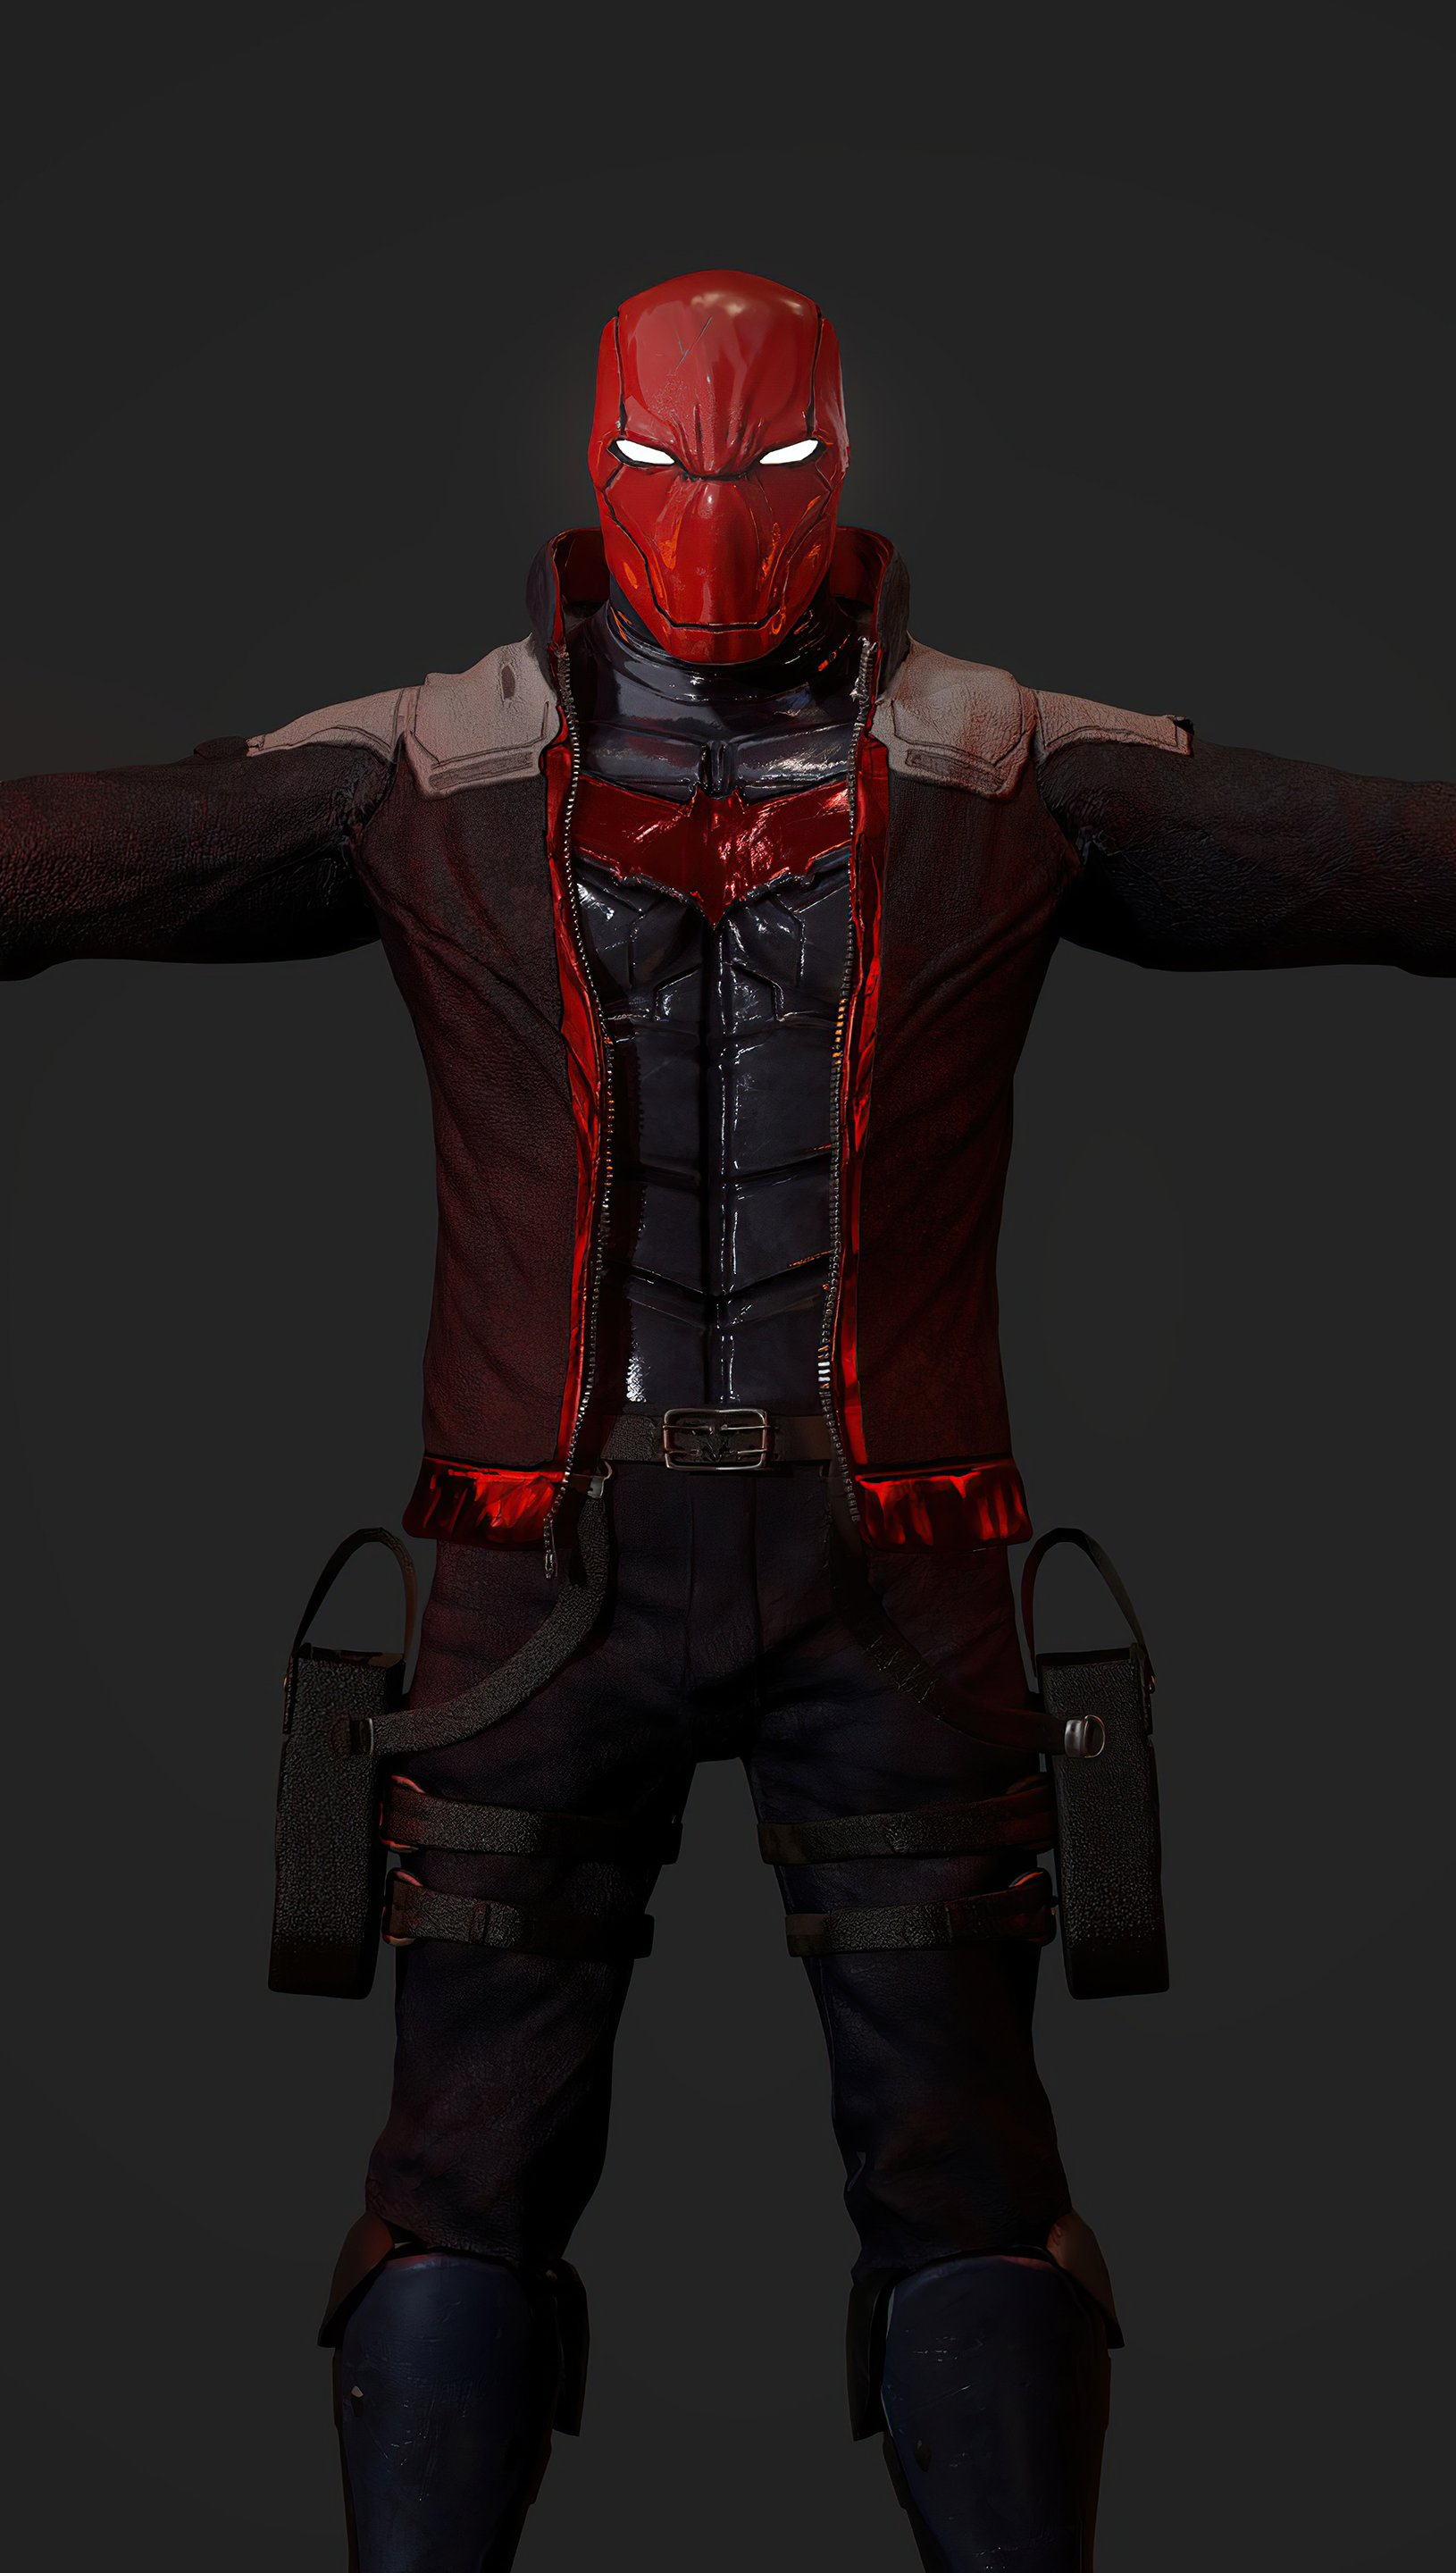 Wallpaper Red hood with guns in both hands Vertical